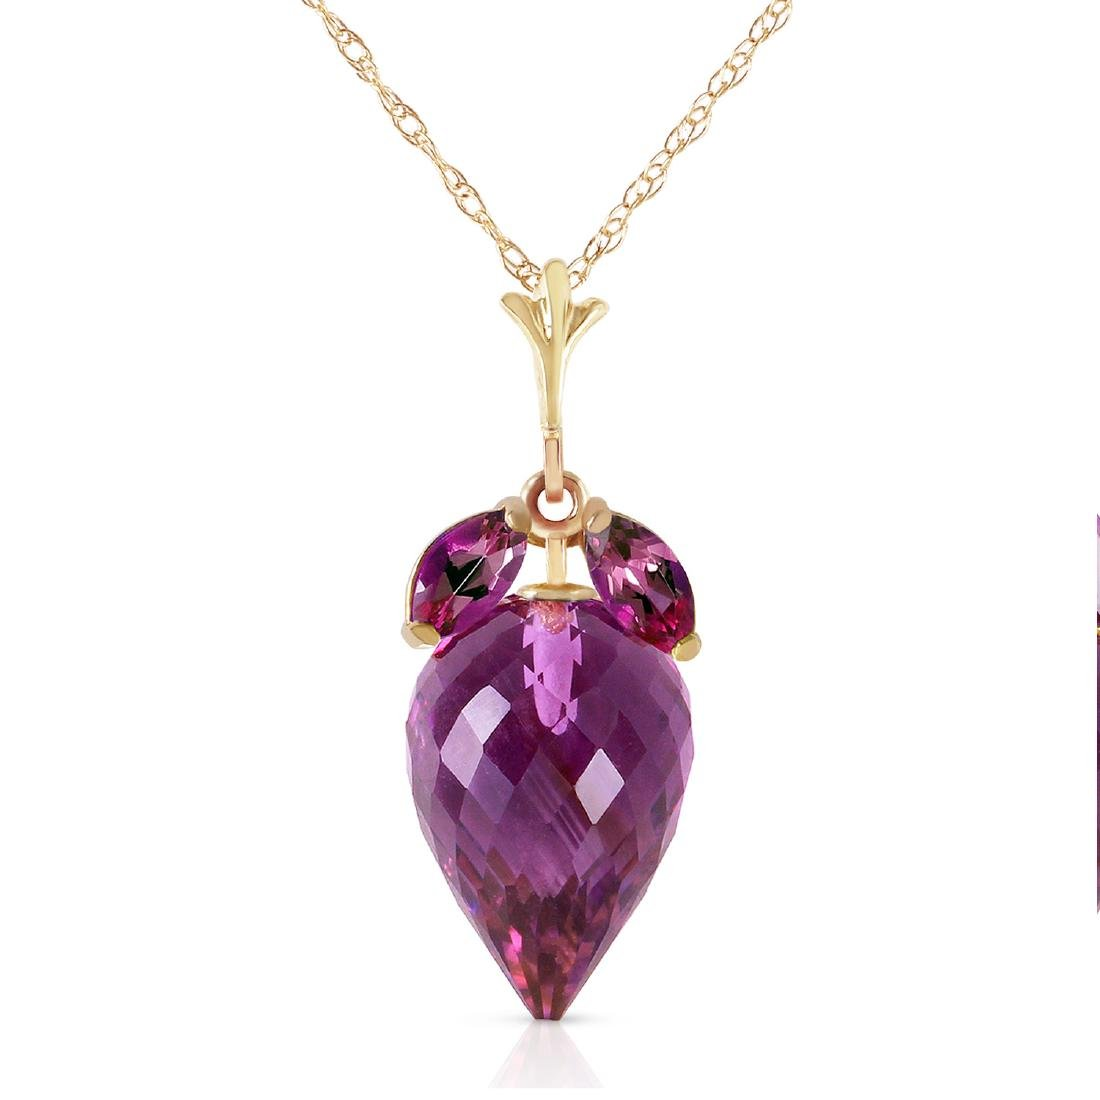 Genuine 10 ctw Amethyst Necklace Jewelry 14KT Yellow